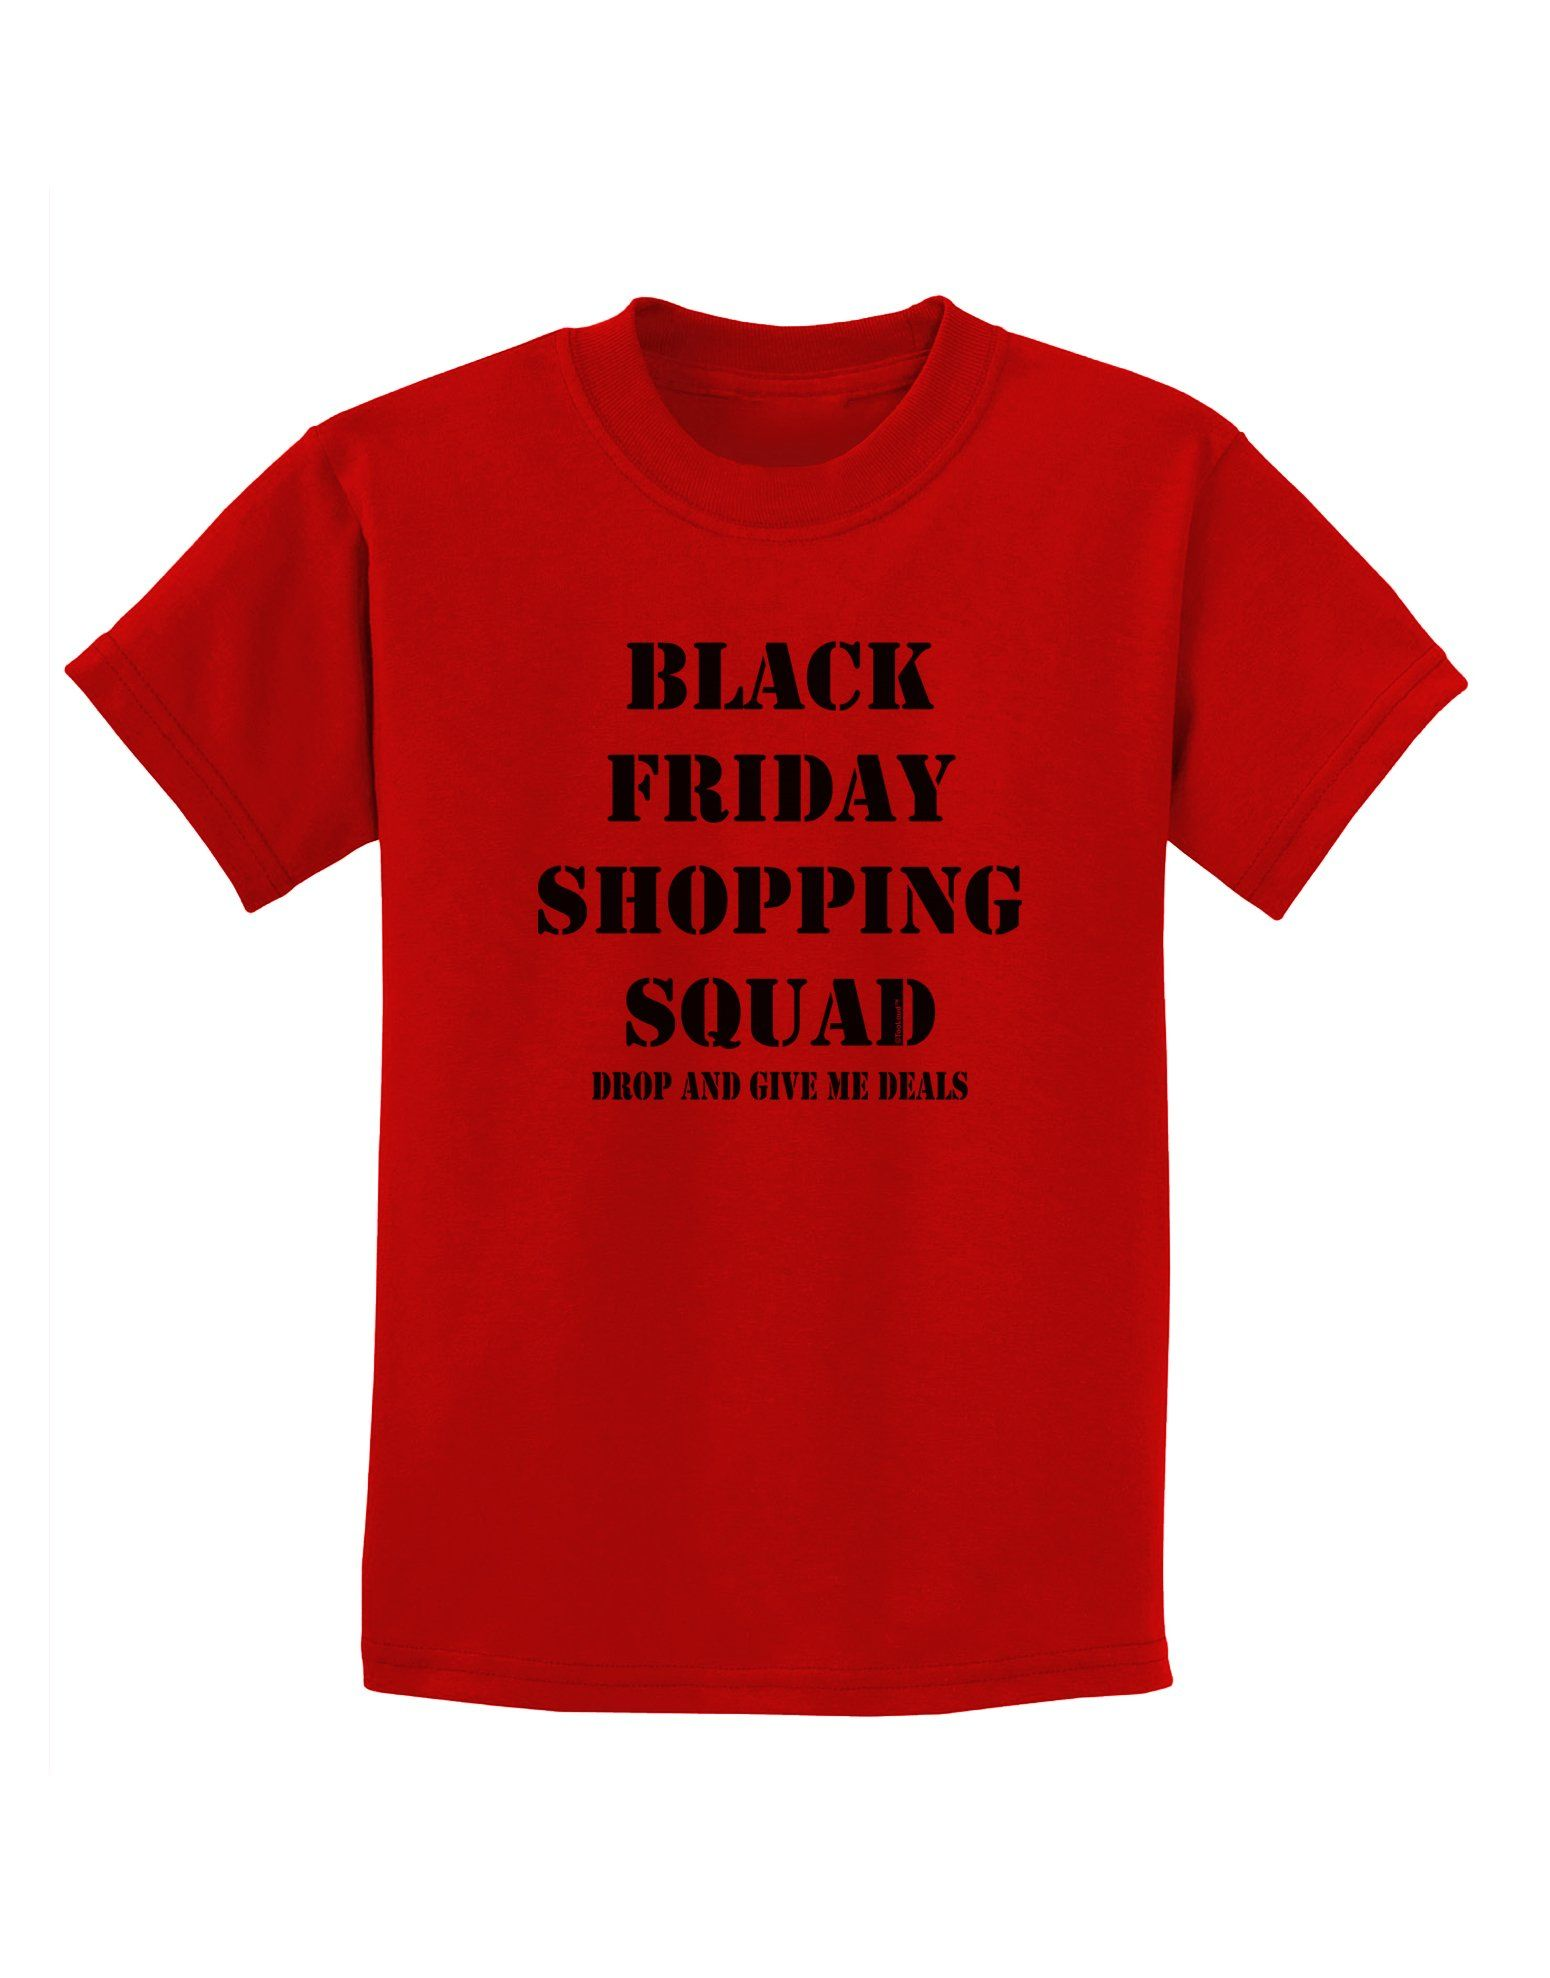 Black Friday Shopping Squad - Drop and Give Me Deals Childrens T-Shirt